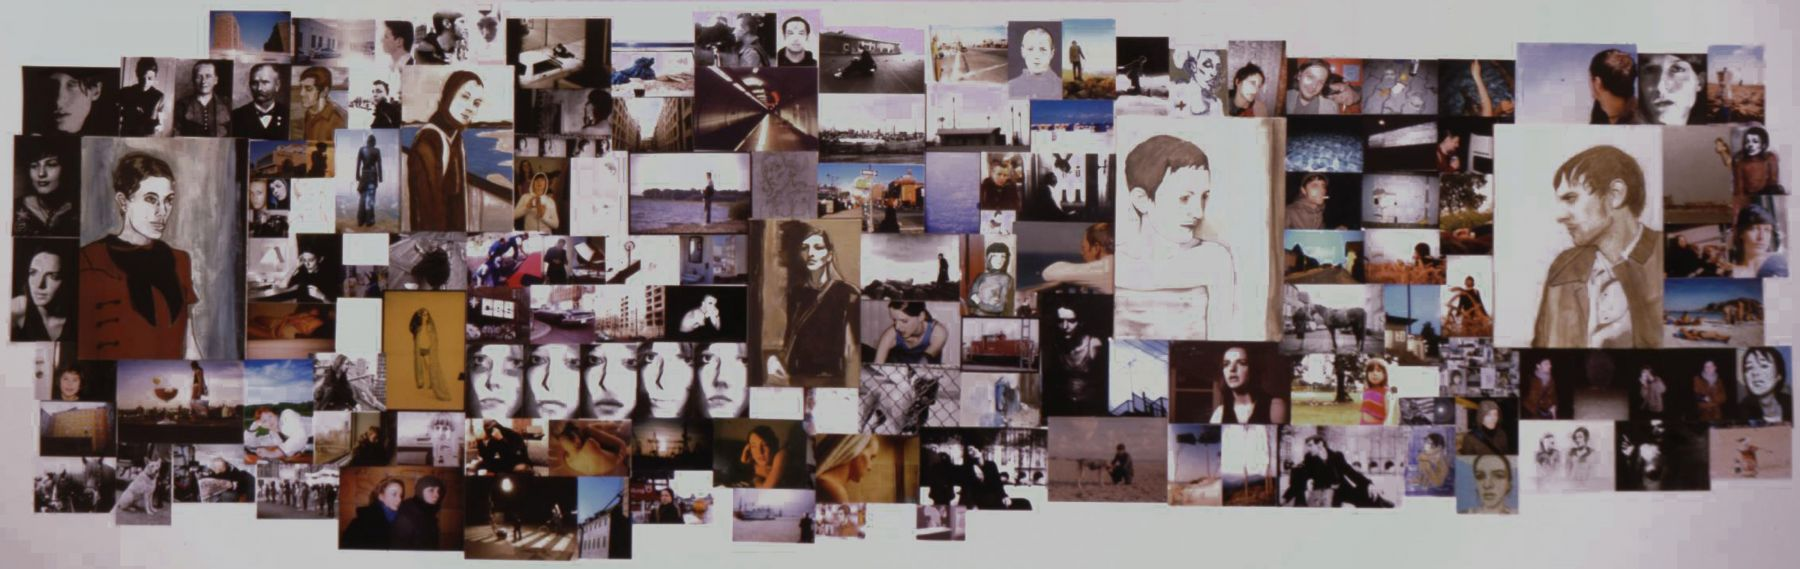 Stephanie Dost, Untitled, 2006-2007